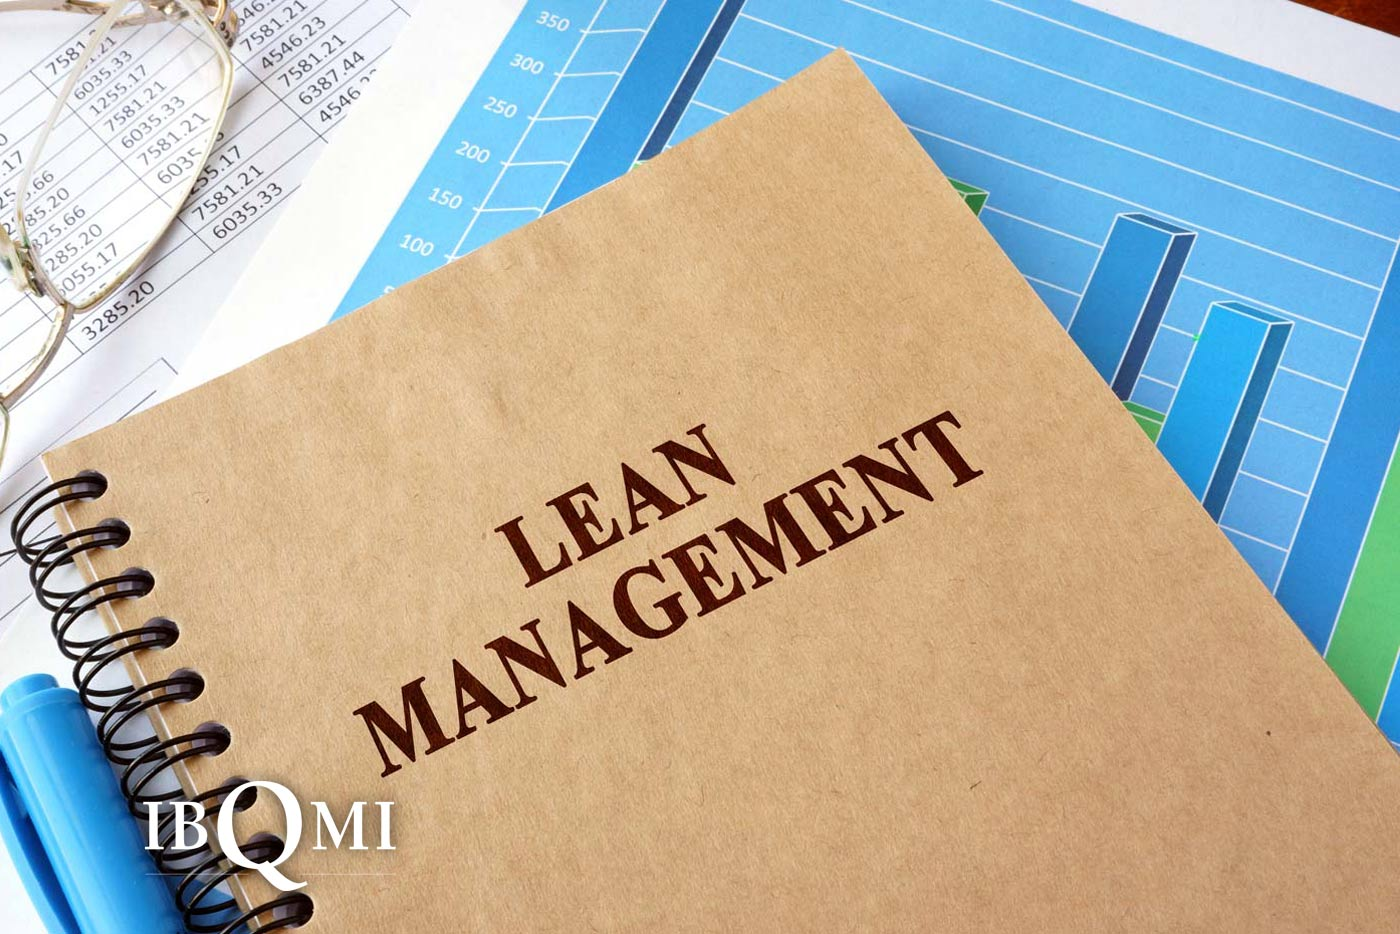 Five factors lean project management